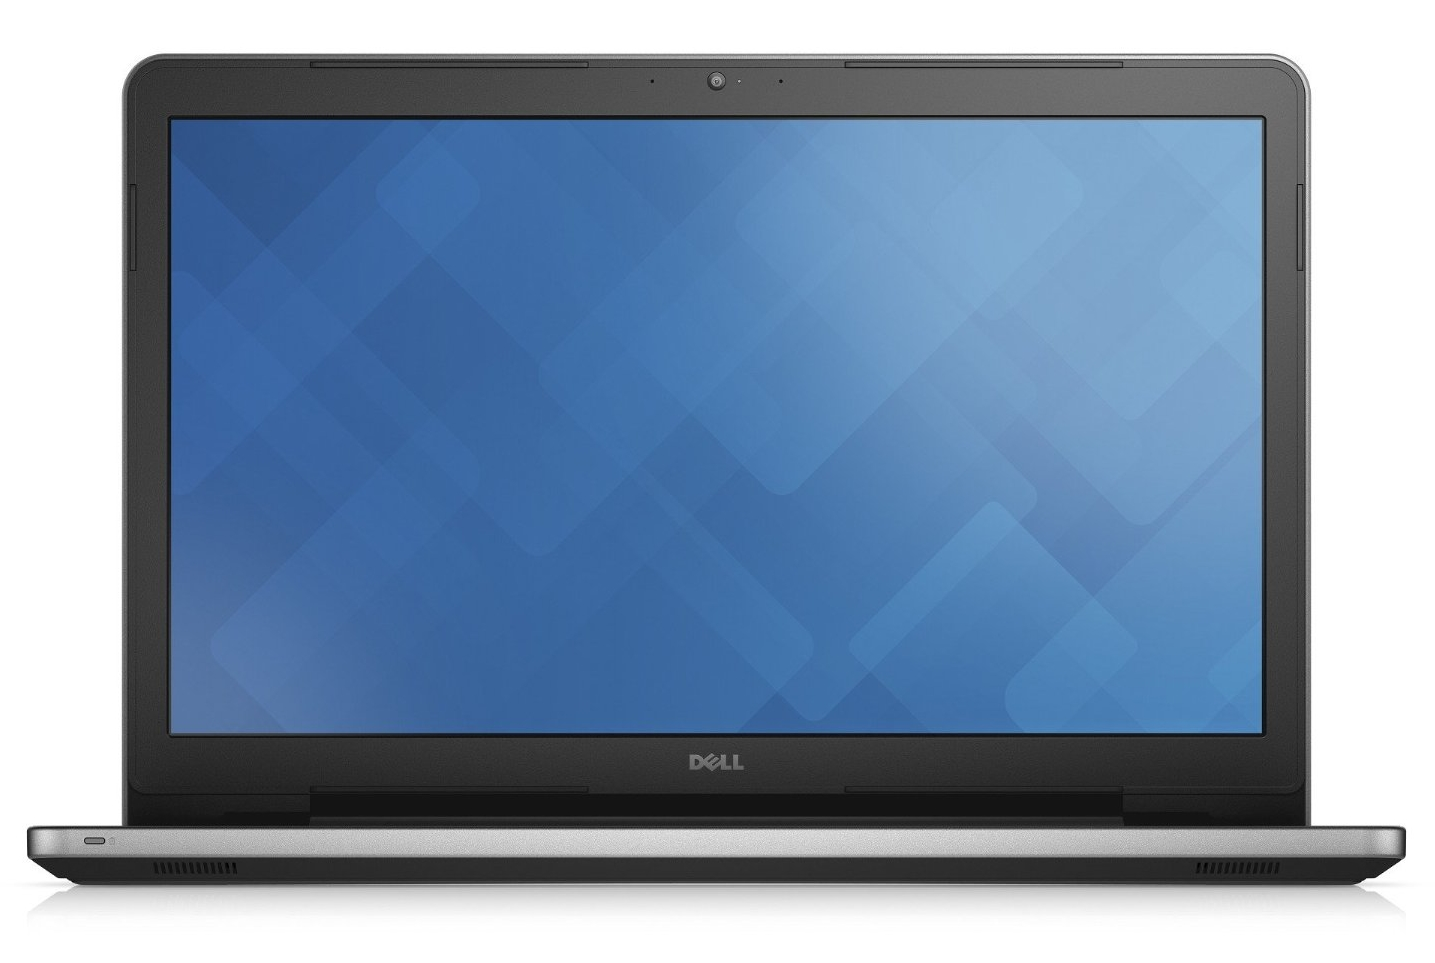 Dell Inspiron 15 Windows 7 x64 Drivers (bit) - GetDriver